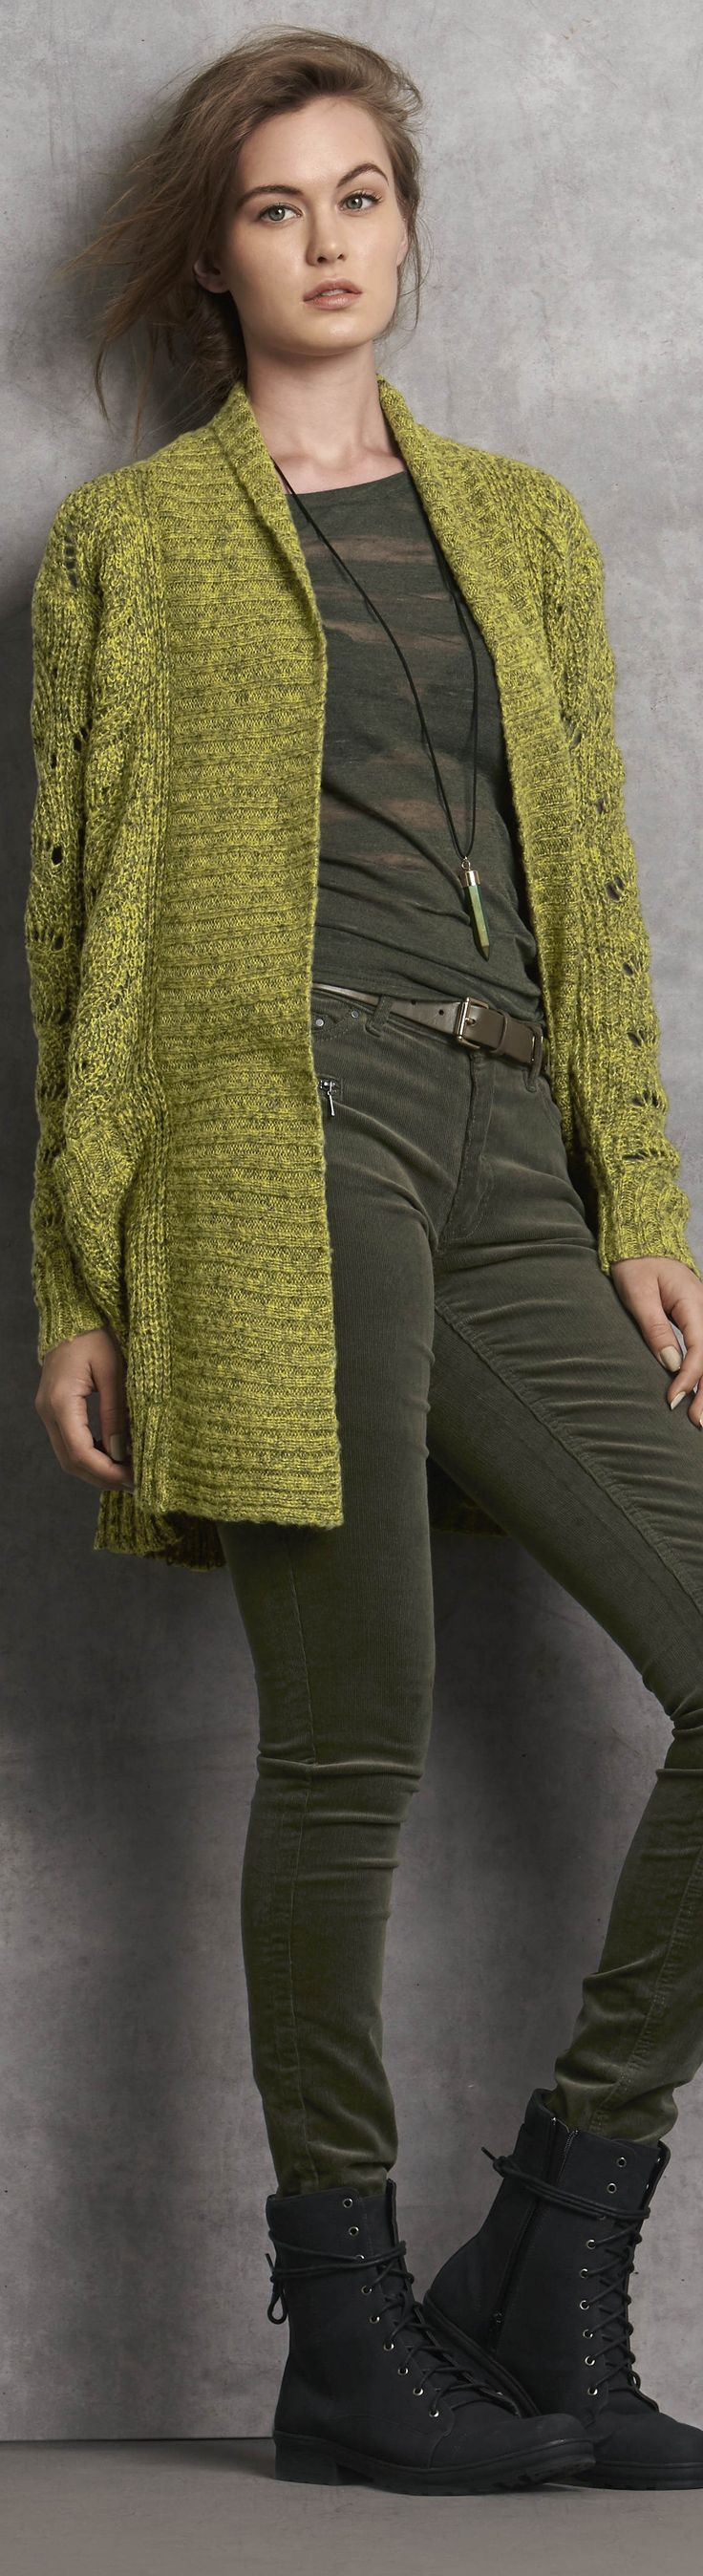 Light over dark or dark over light can make you look skinny. And, almost all greens go with other greens, just like leaves in a garden. I love this mossy yellow-green cardi with dark khaki. It's one of my best color combinations. See more color combinations.